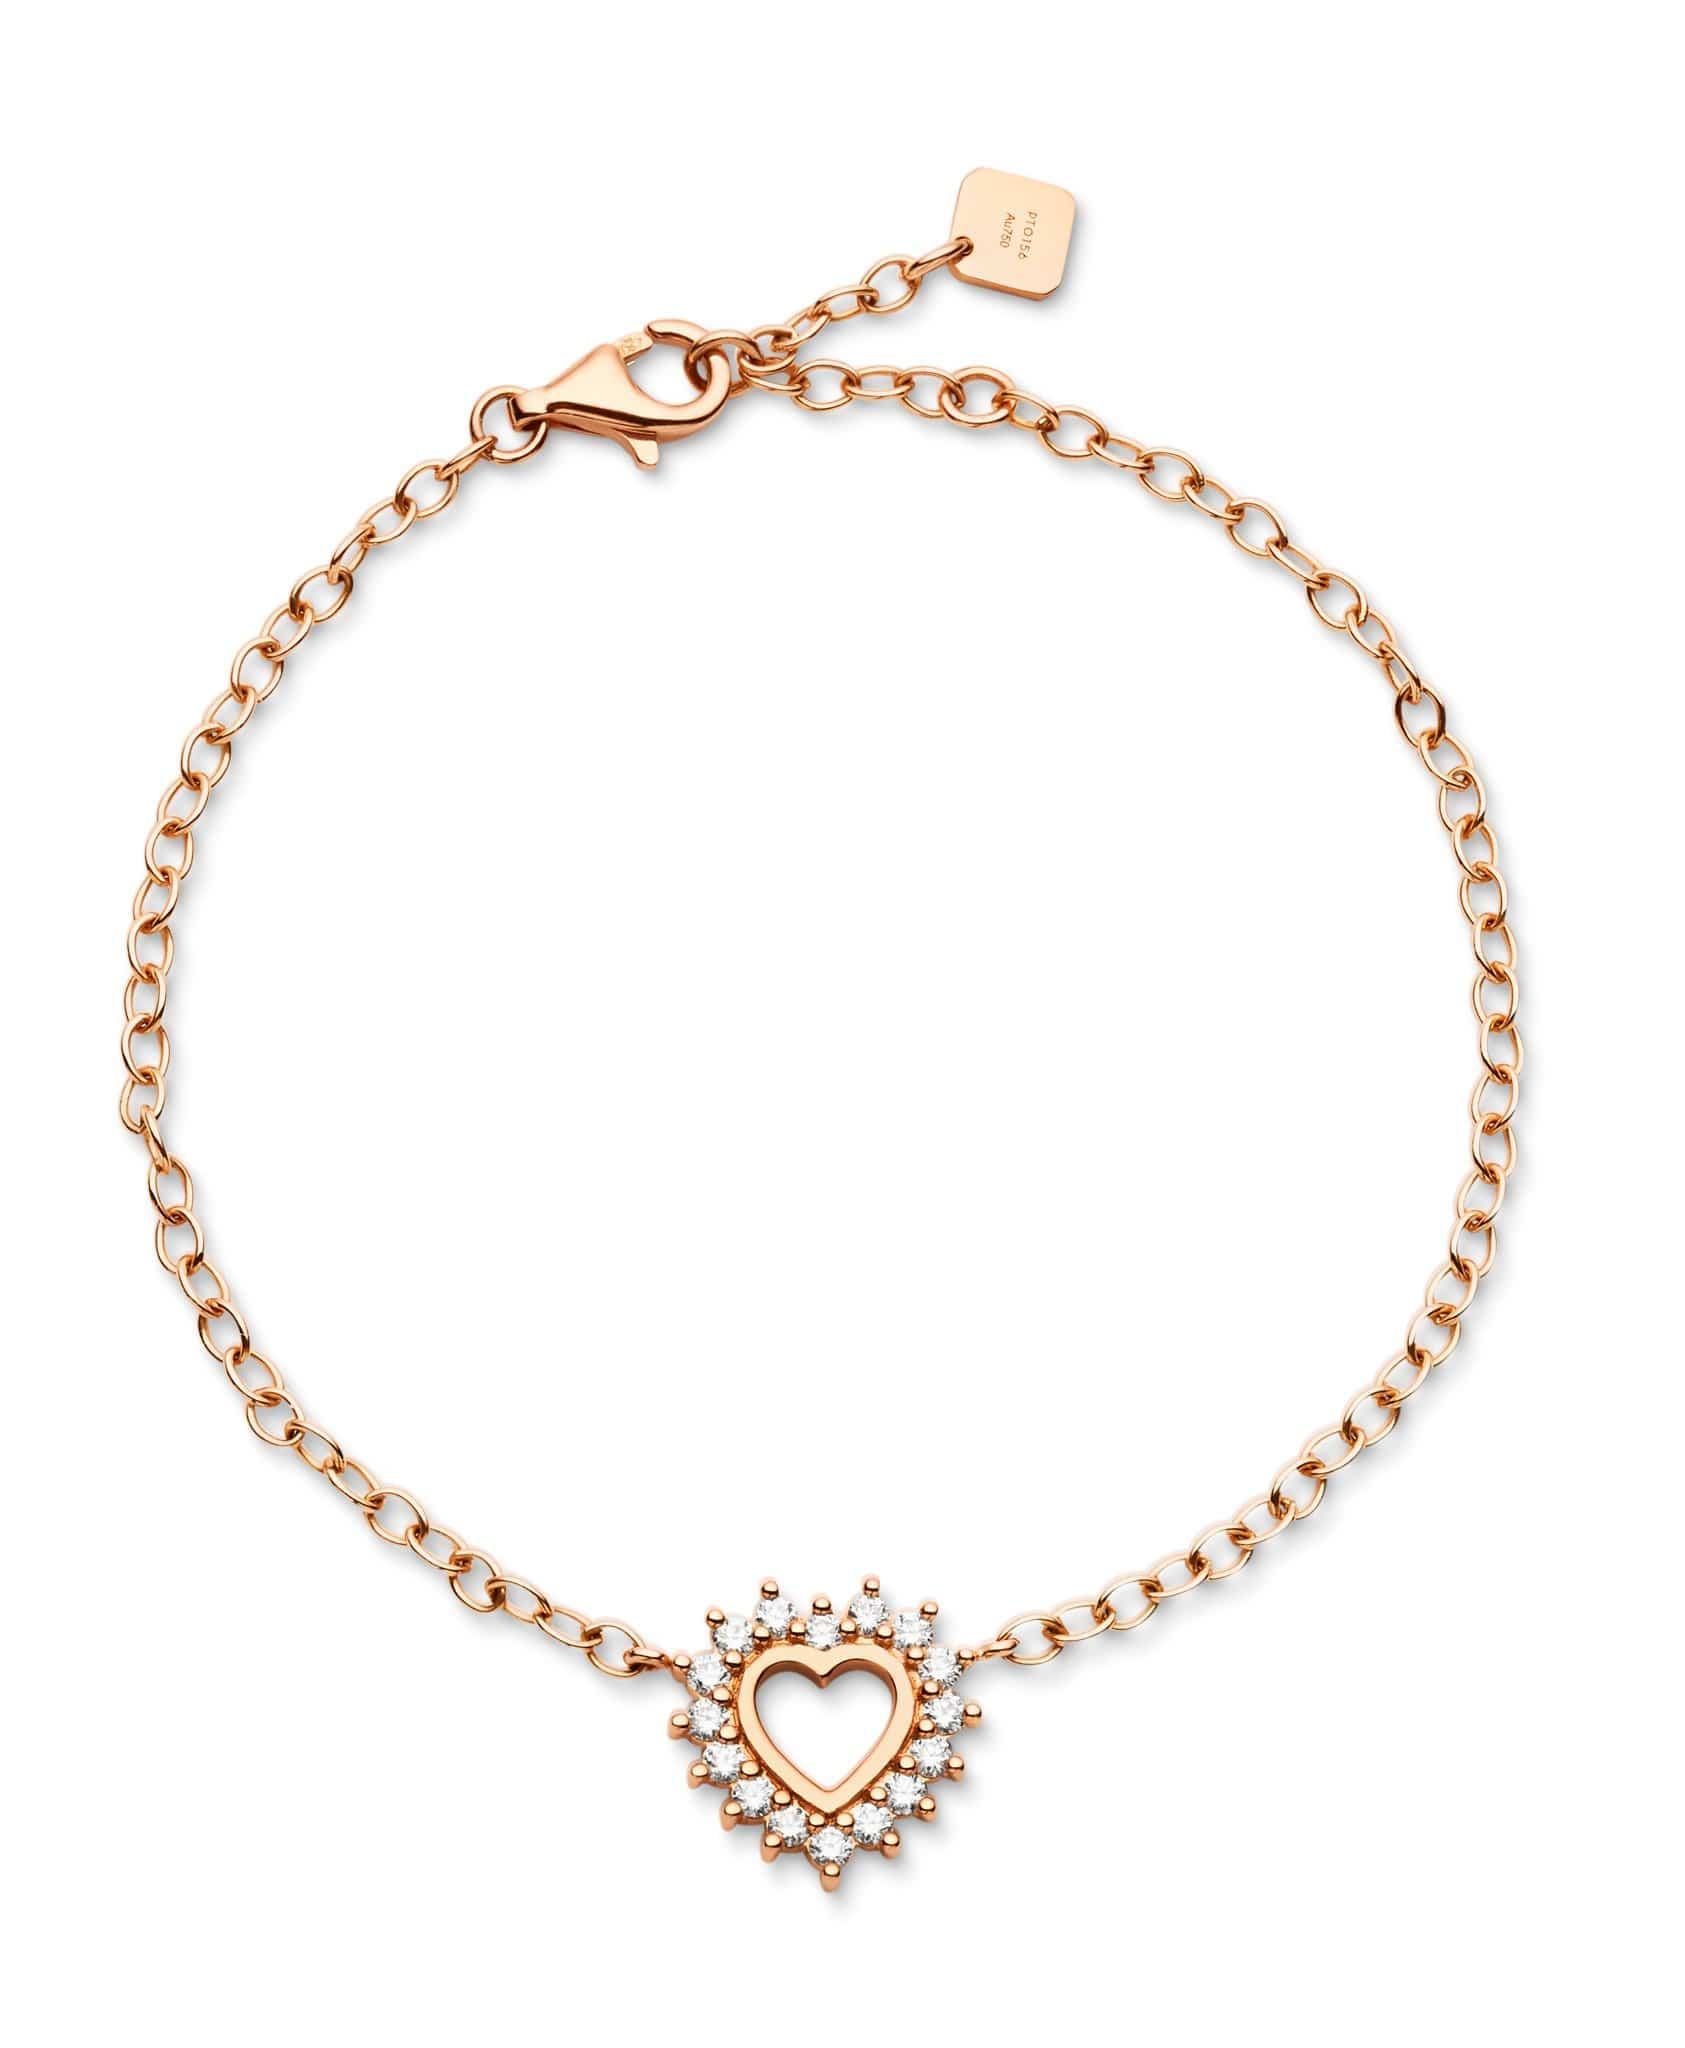 Medium Love Bracelet - Nouvel Heritage